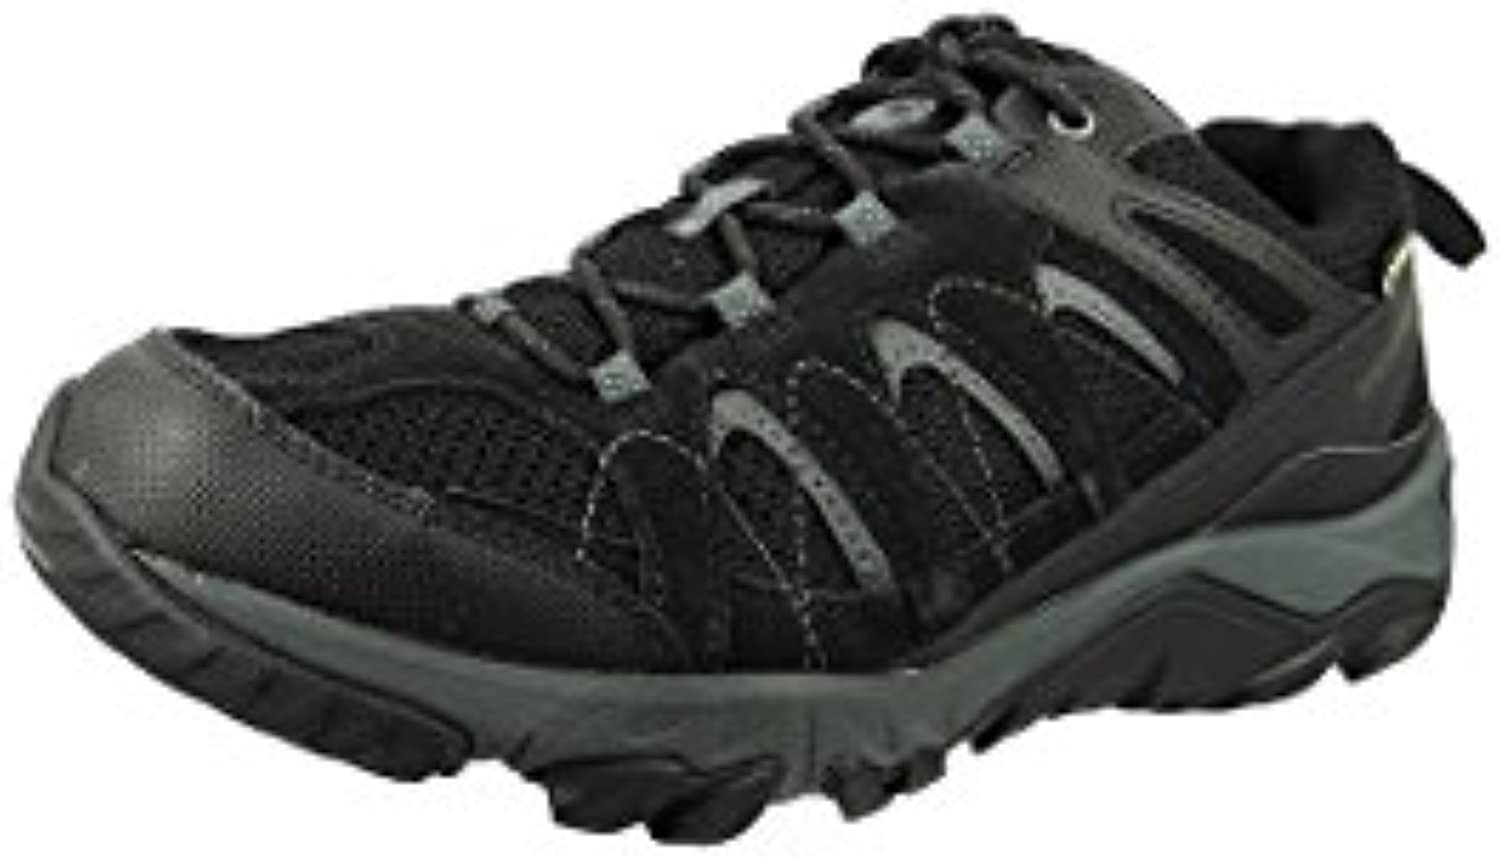 Merrell Mens Shoe Outmost Vent GTX Black  -